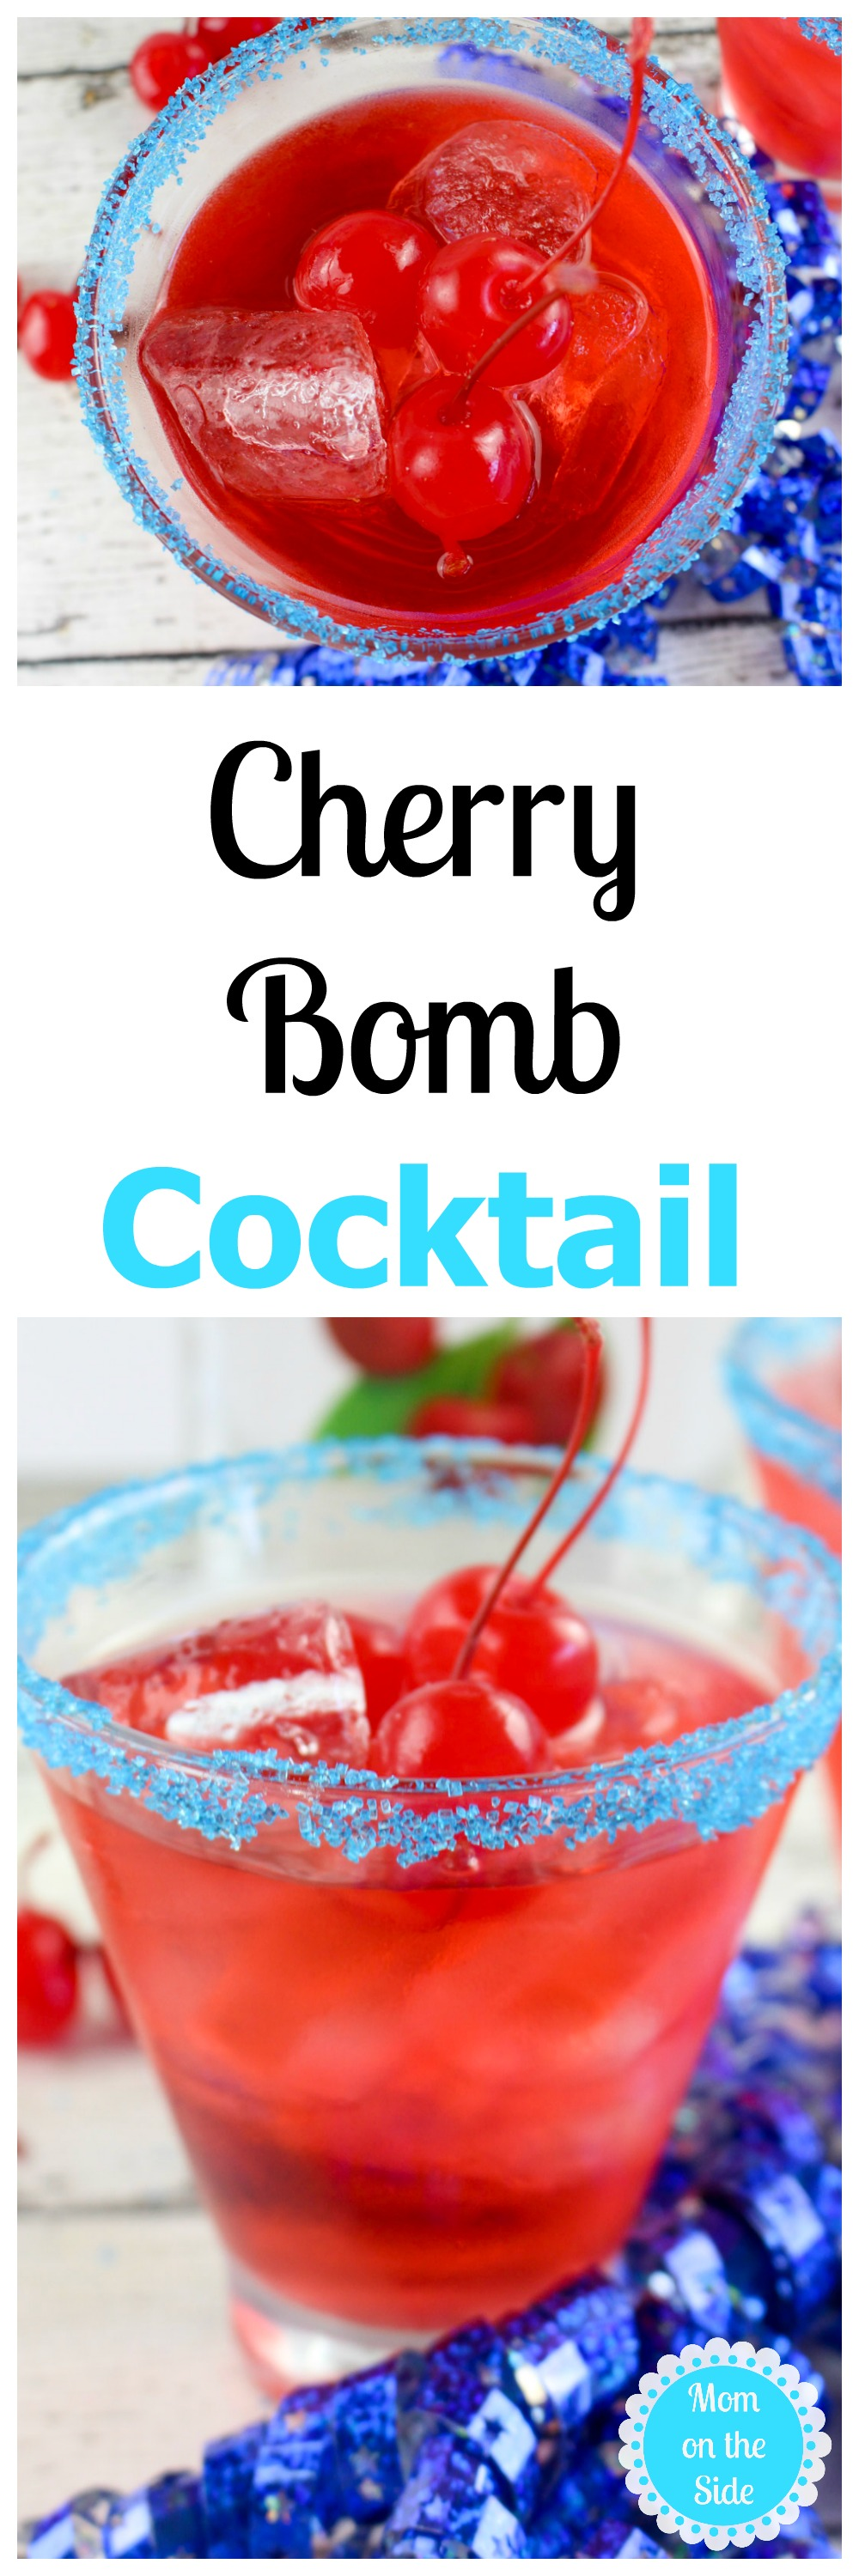 This Thirsty Thursday is a drink perfect for adult 4th of July parties! The Cherry Bomb Cocktail is light and refreshing with a touch of alcohol.